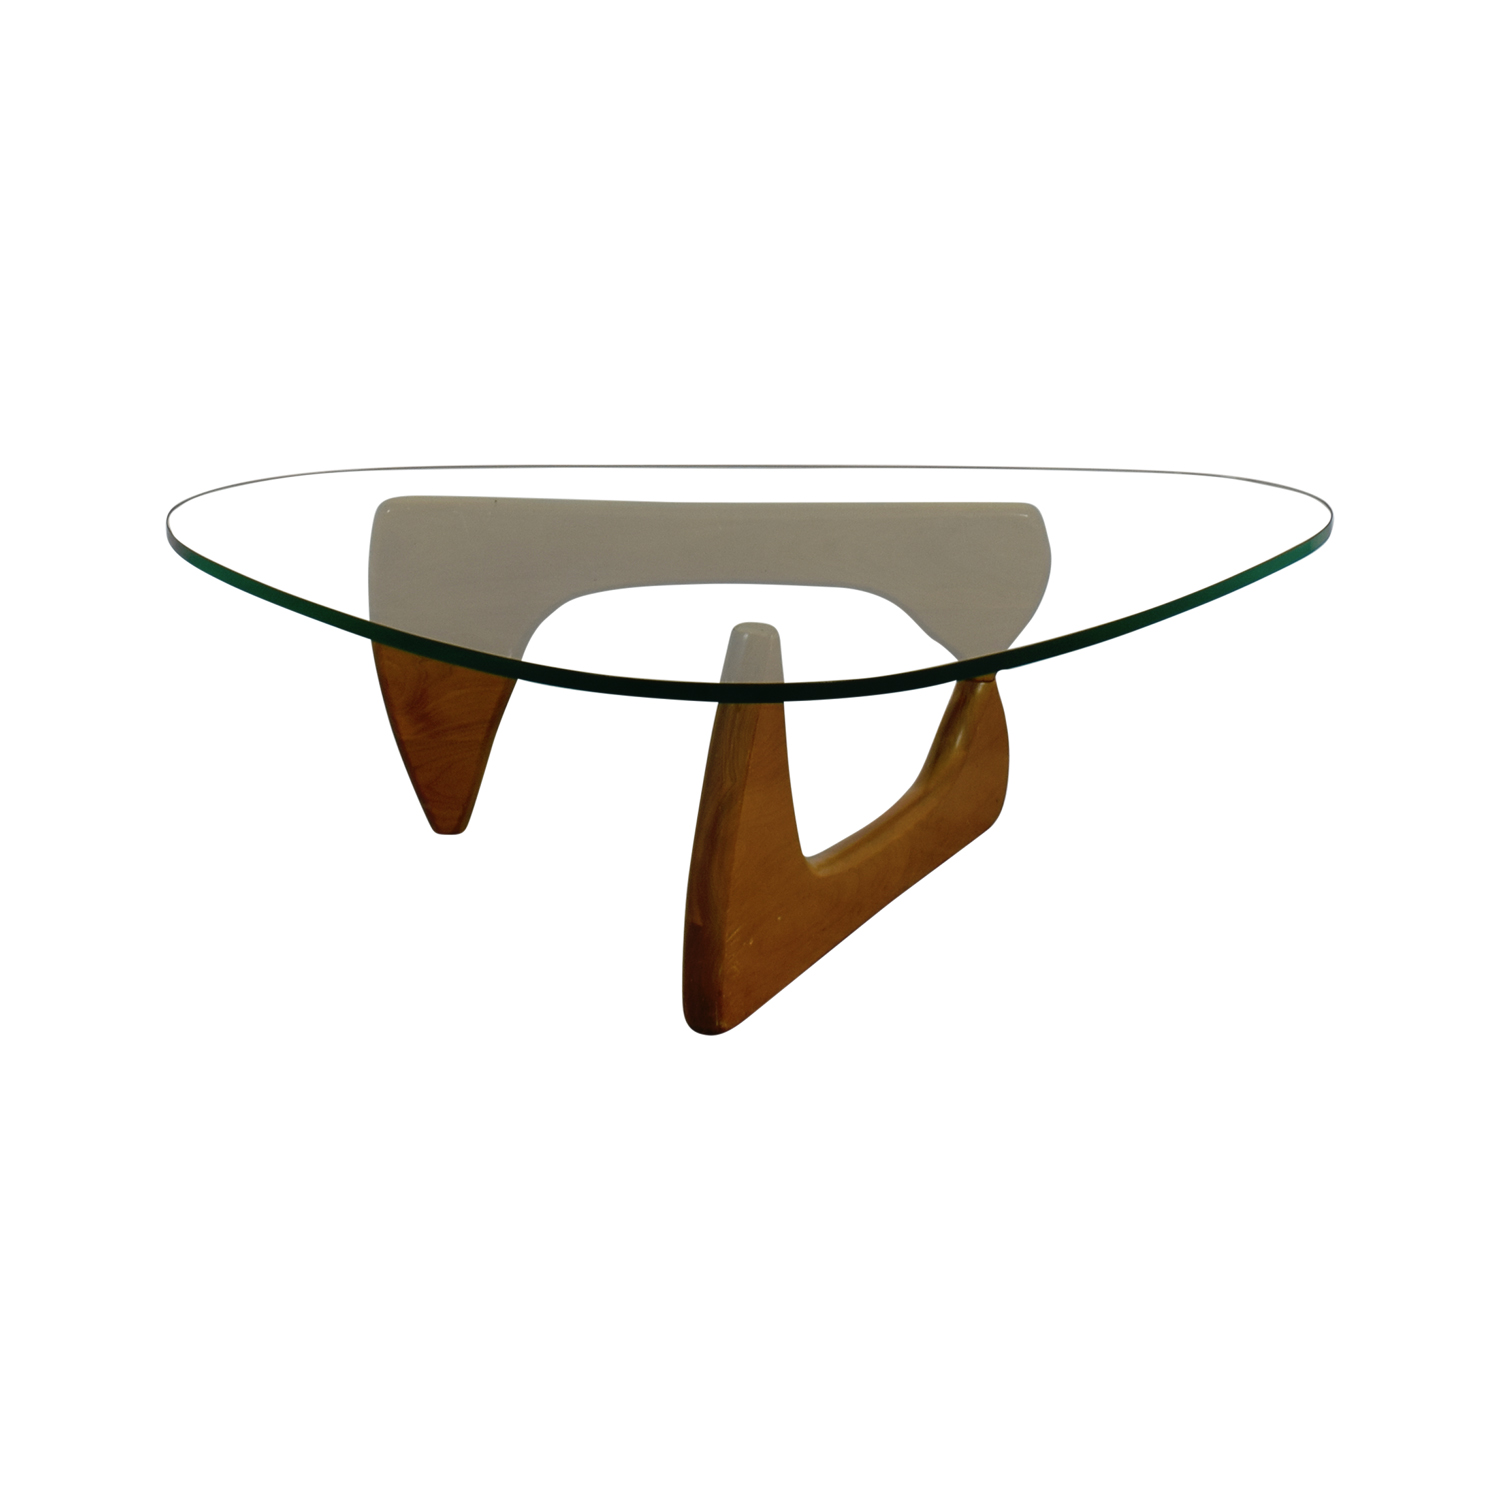 Noguchi Inspired Glass and Wood Table on sale